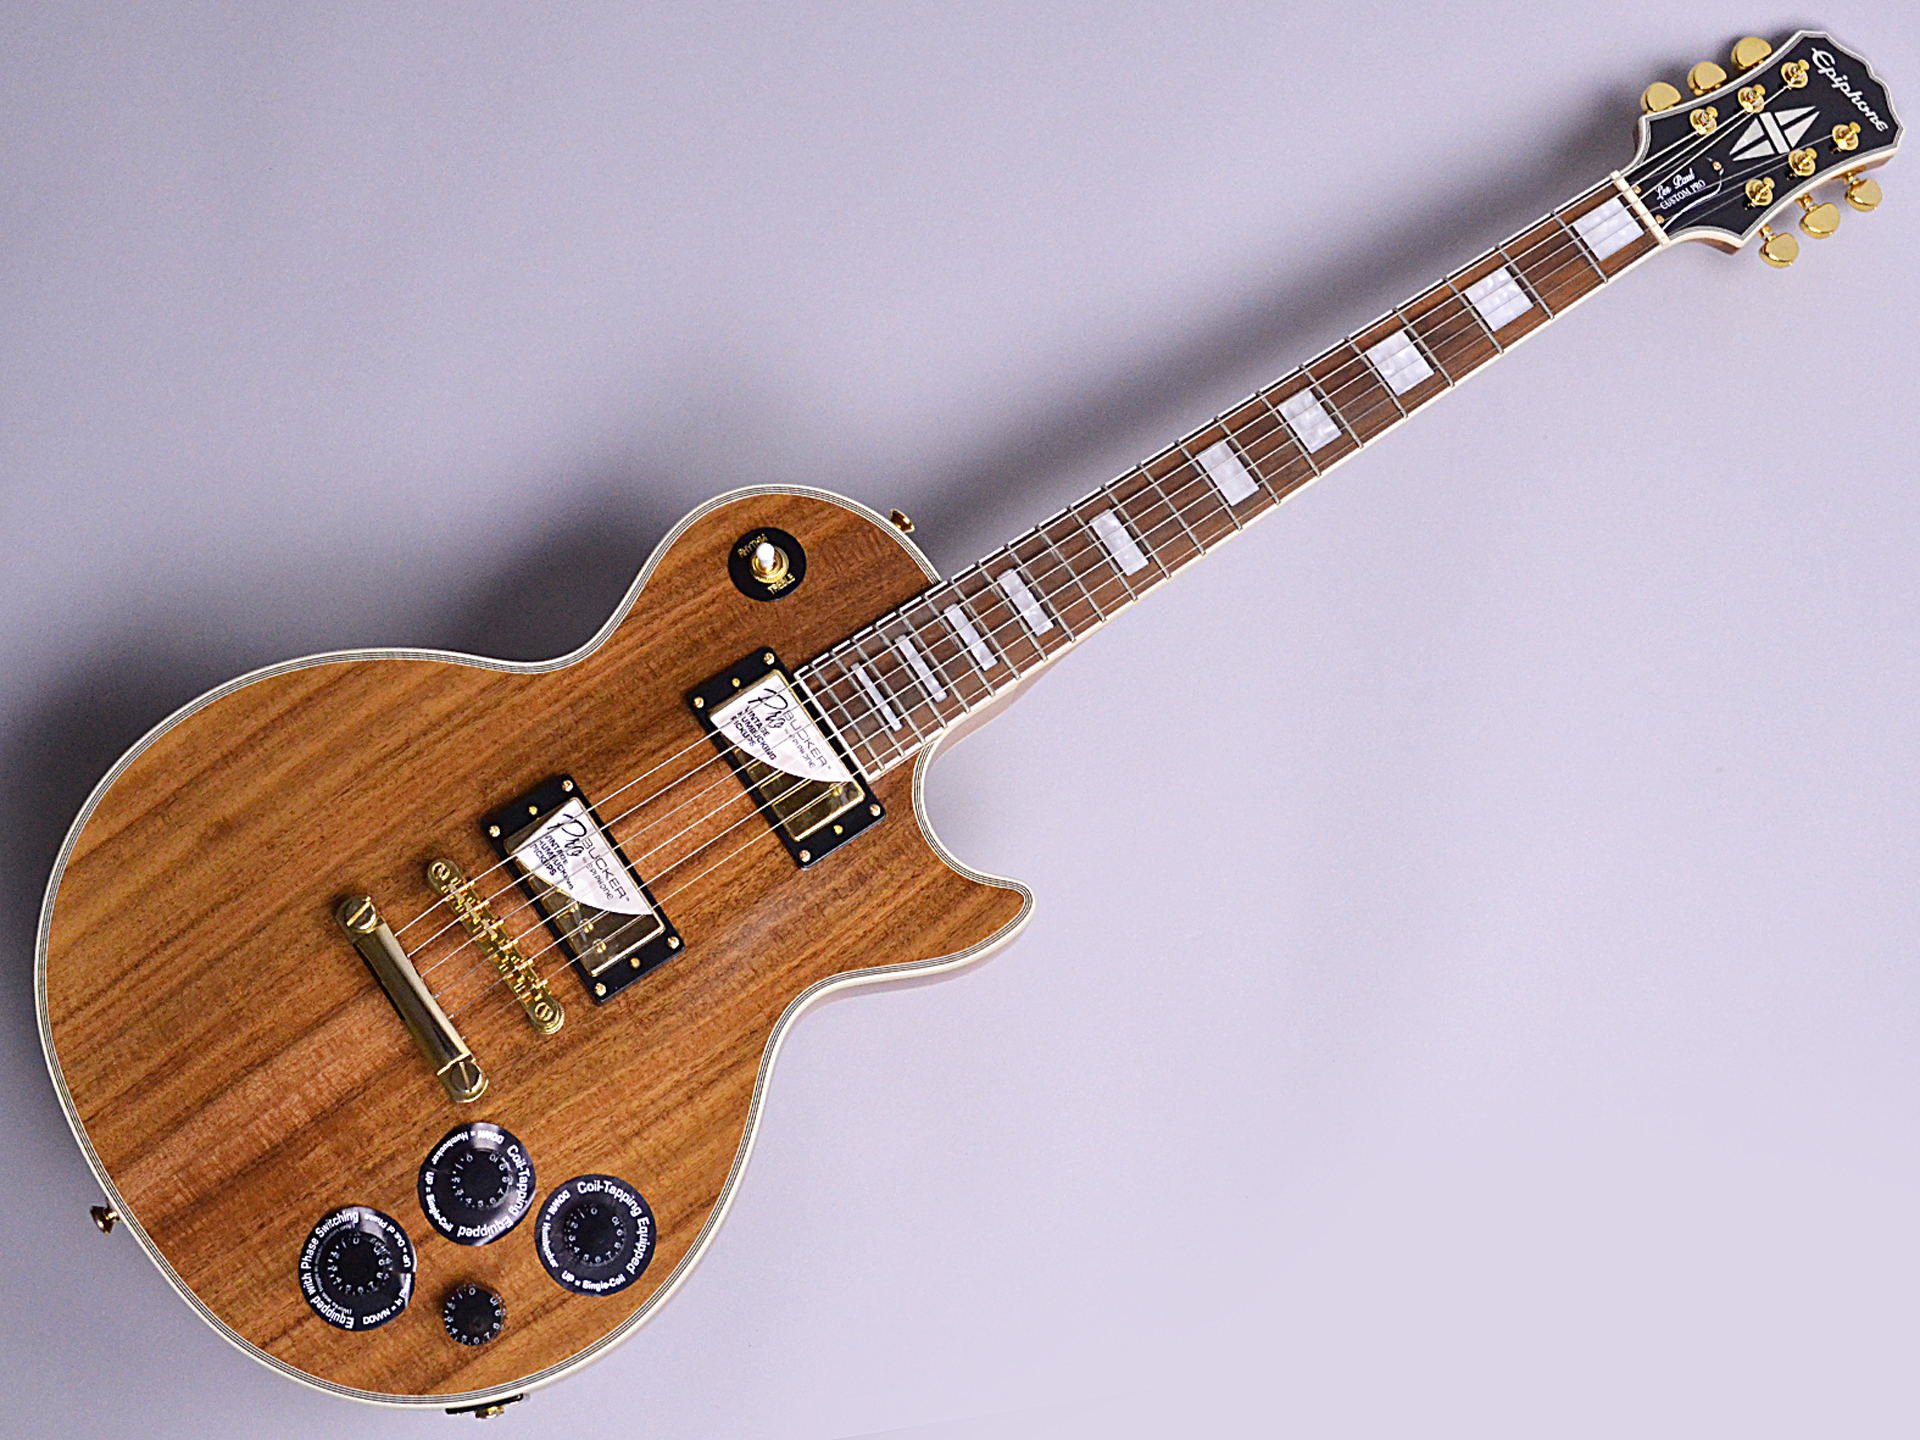 Limited Edition Les Paul Custom PRO KOAの全体画像